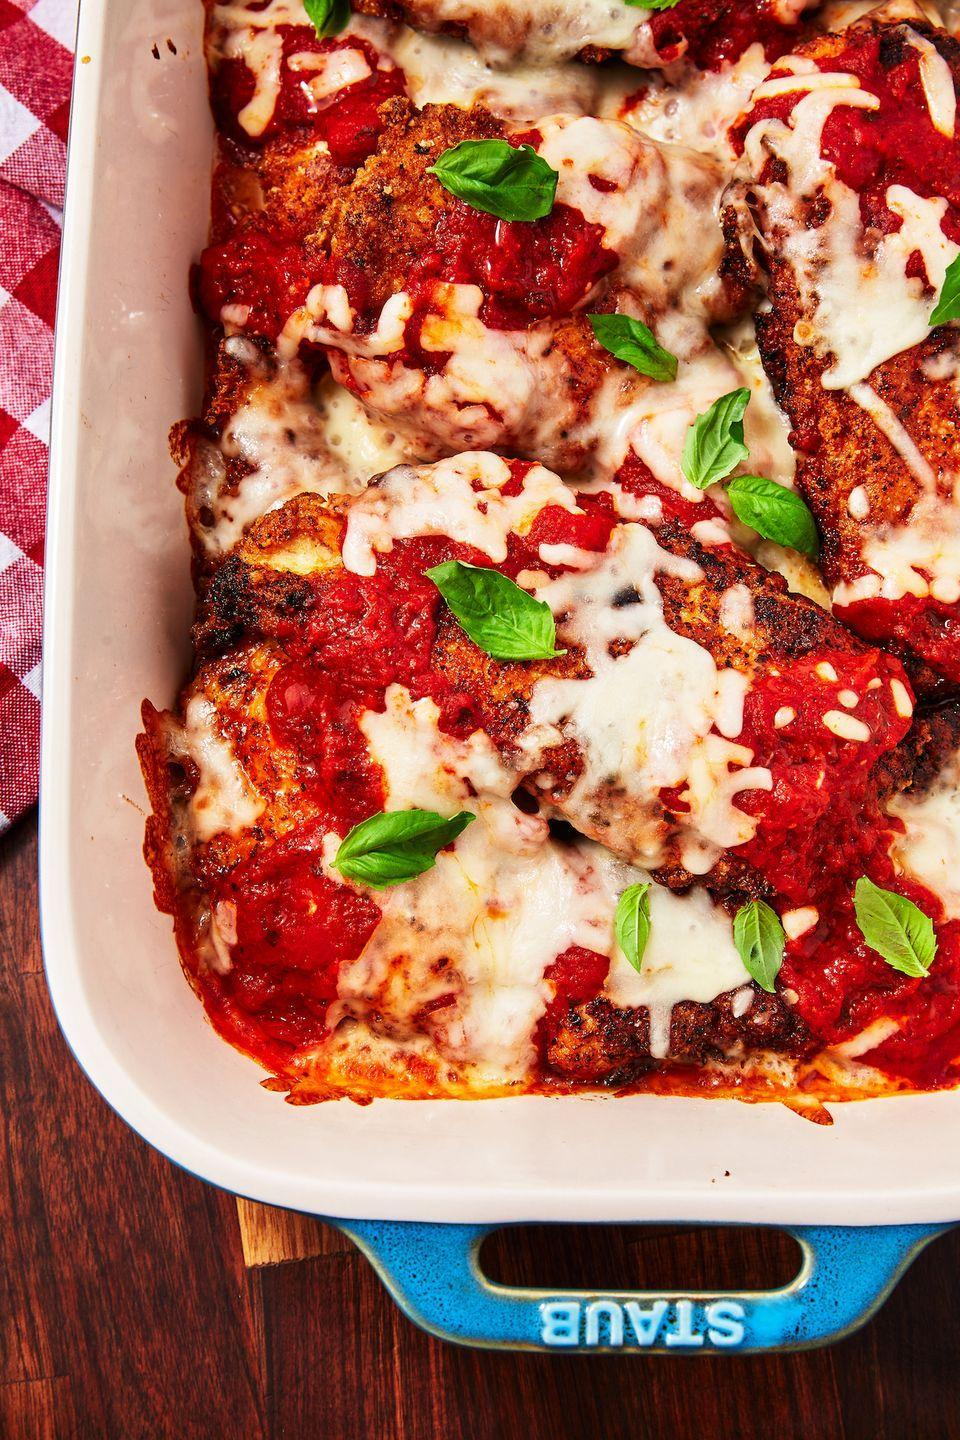 """<p>Yup, you can eat chicken parm <em>and </em>not break keto.</p><p>Get the recipe from <a href=""""https://www.delish.com/cooking/nutrition/a30221954/keto-chicken-parmesan-recipe/"""" rel=""""nofollow noopener"""" target=""""_blank"""" data-ylk=""""slk:Delish"""" class=""""link rapid-noclick-resp"""">Delish</a>.</p>"""